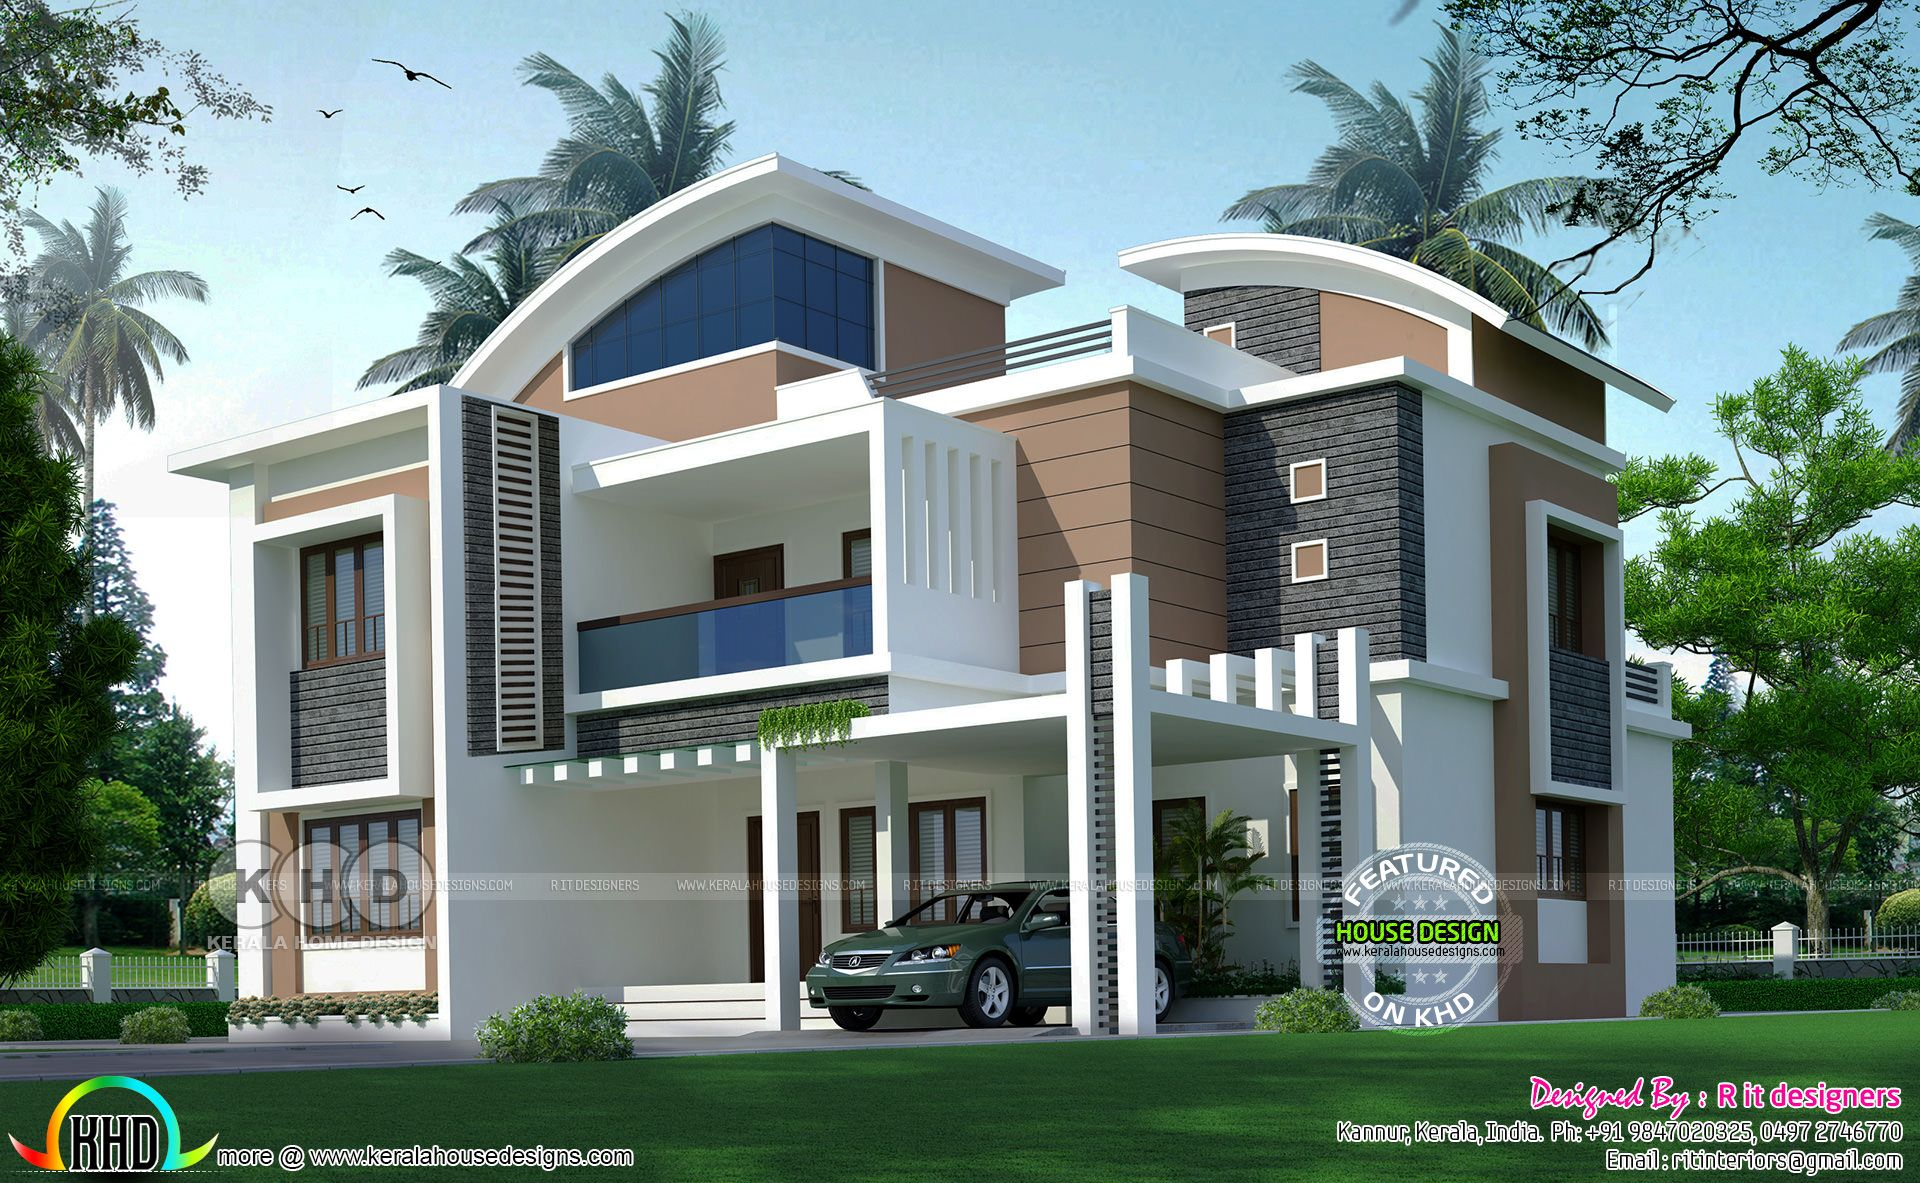 5 bedroom 3212 sq-ft house architecture | anup sheokand ... on bedroom loft plans, bedroom mansion, backyard modern house plans, bedroom minimalist, bedroom lighting plans, beach modern house plans, art modern house plans, bedroom bathroom, bedroom design plans,